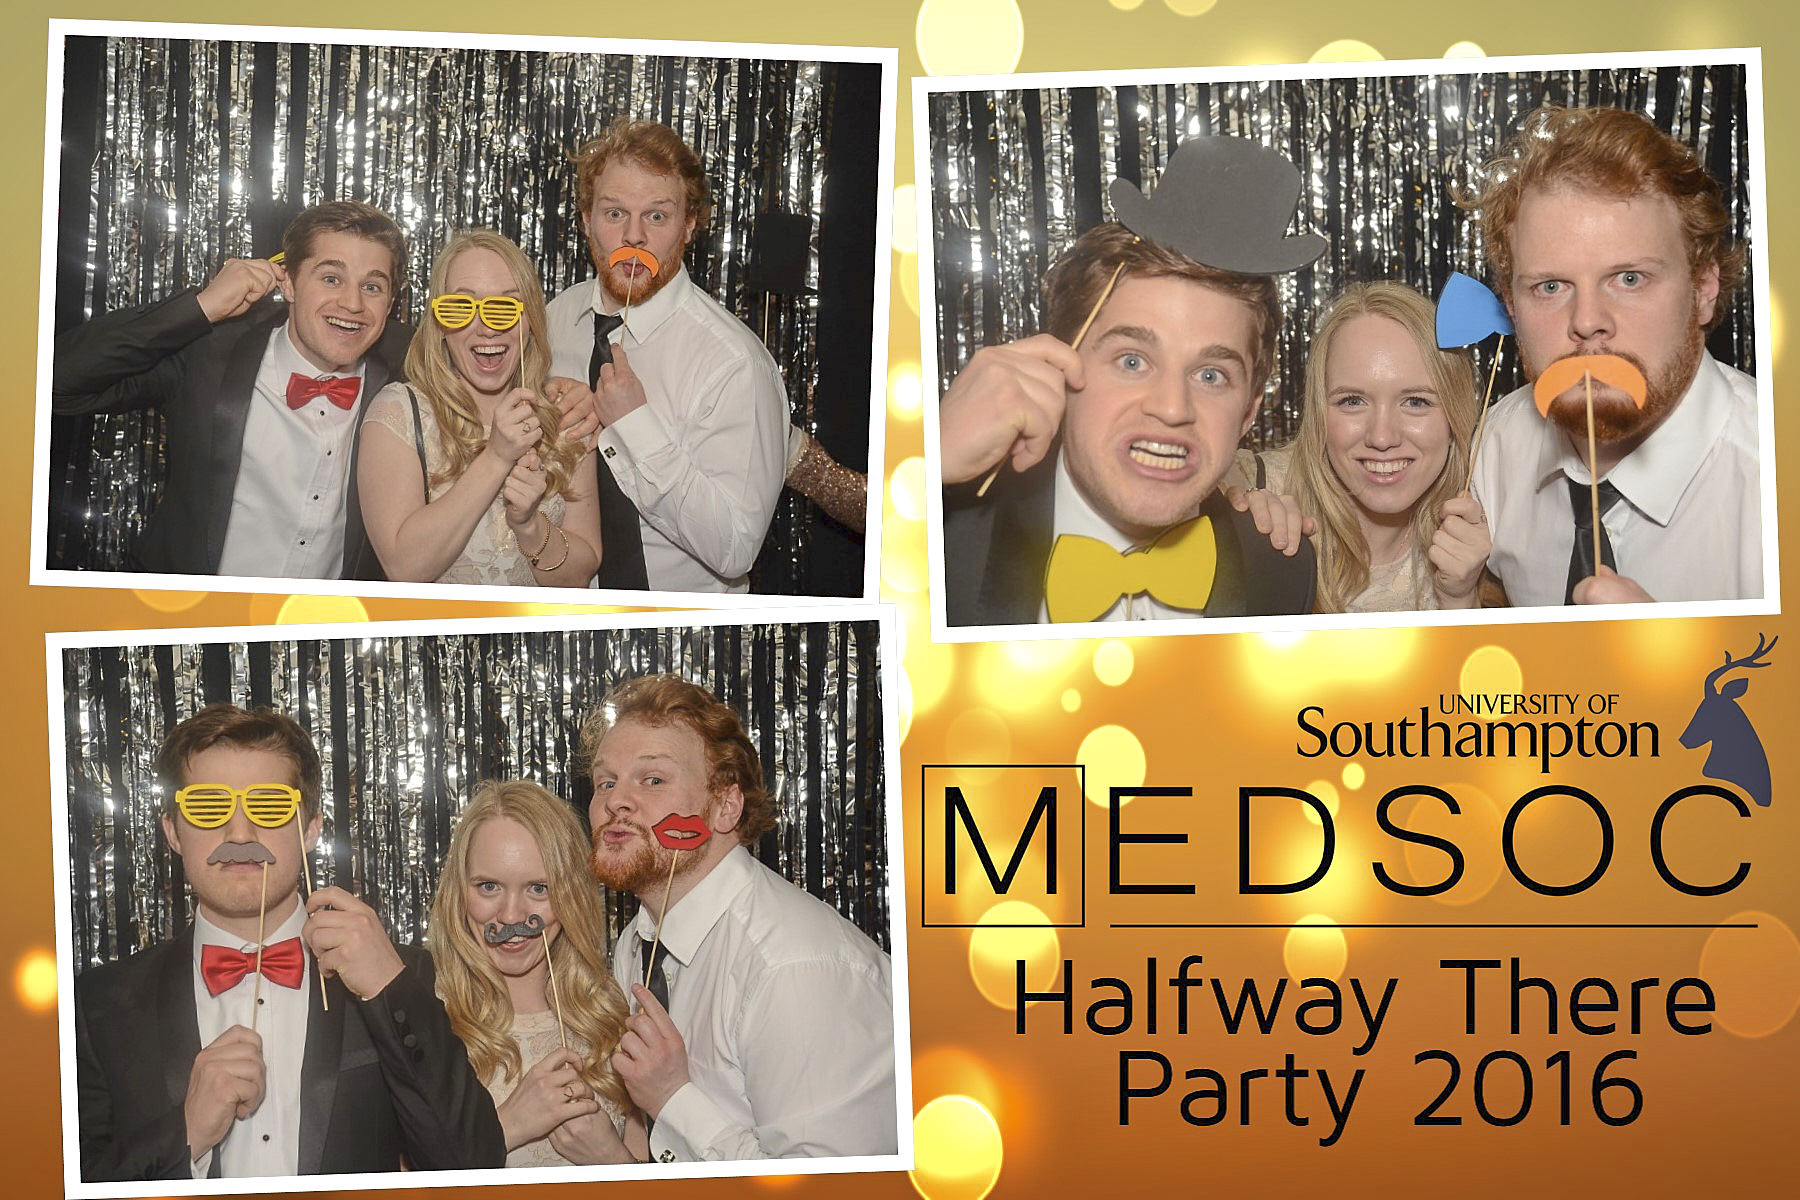 MedSoc Halfway There Party 2016 DS002055.jpg